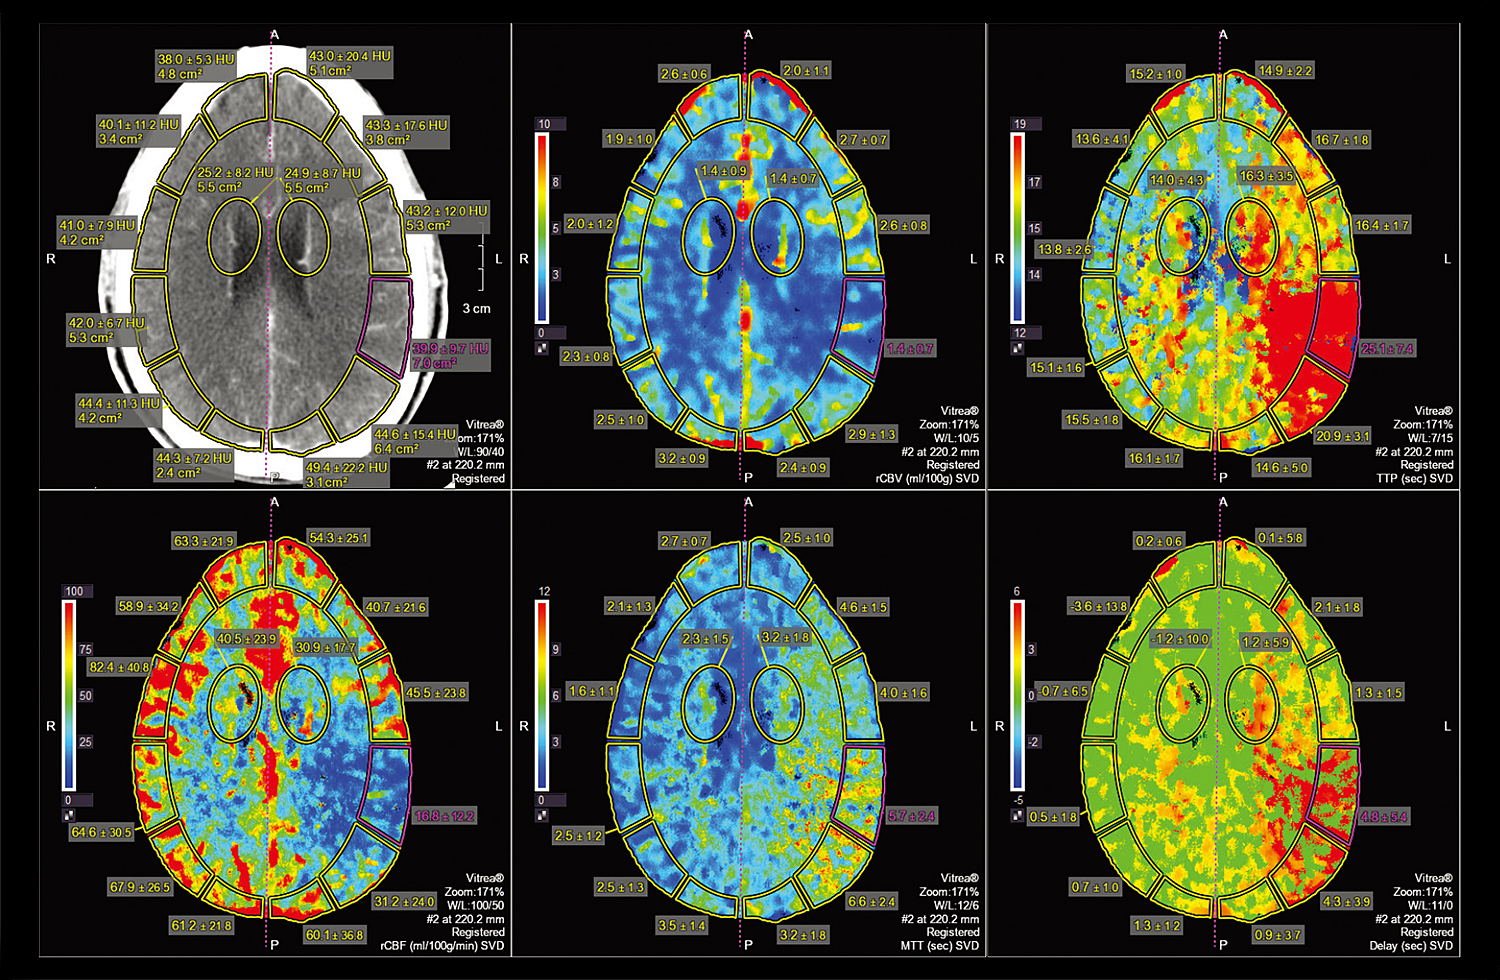 CT Brain Perfusion 2D